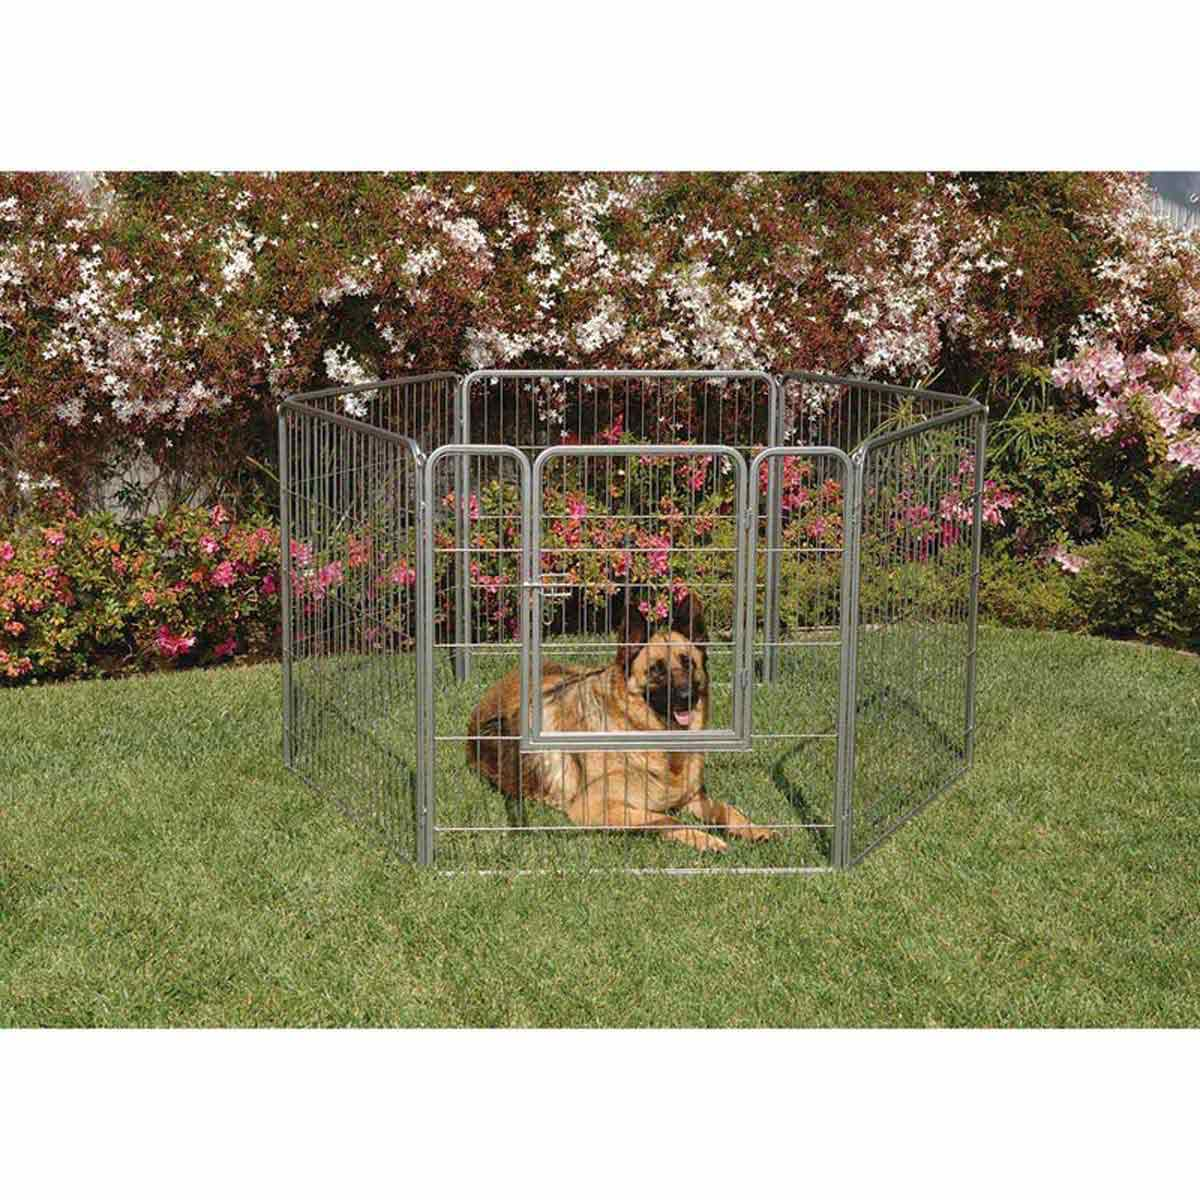 Precision Courtyard Kennel for Dogs with Gate - 6 Panels